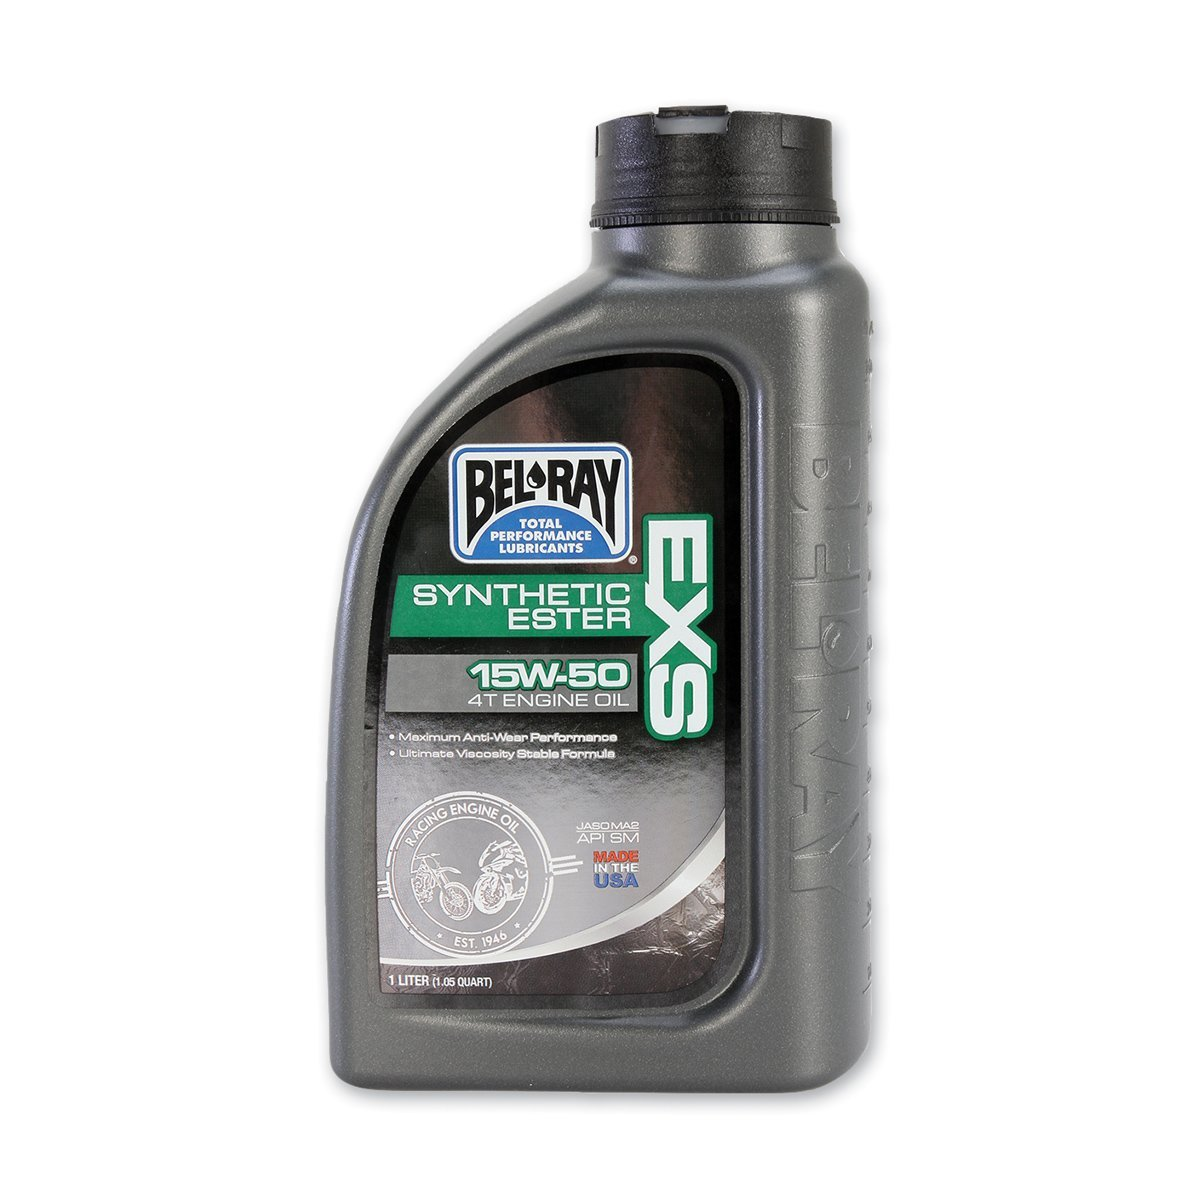 Bel-Ray 15W50 EXS Synthetic Ester 4T Engine Oil 99162-B1LW